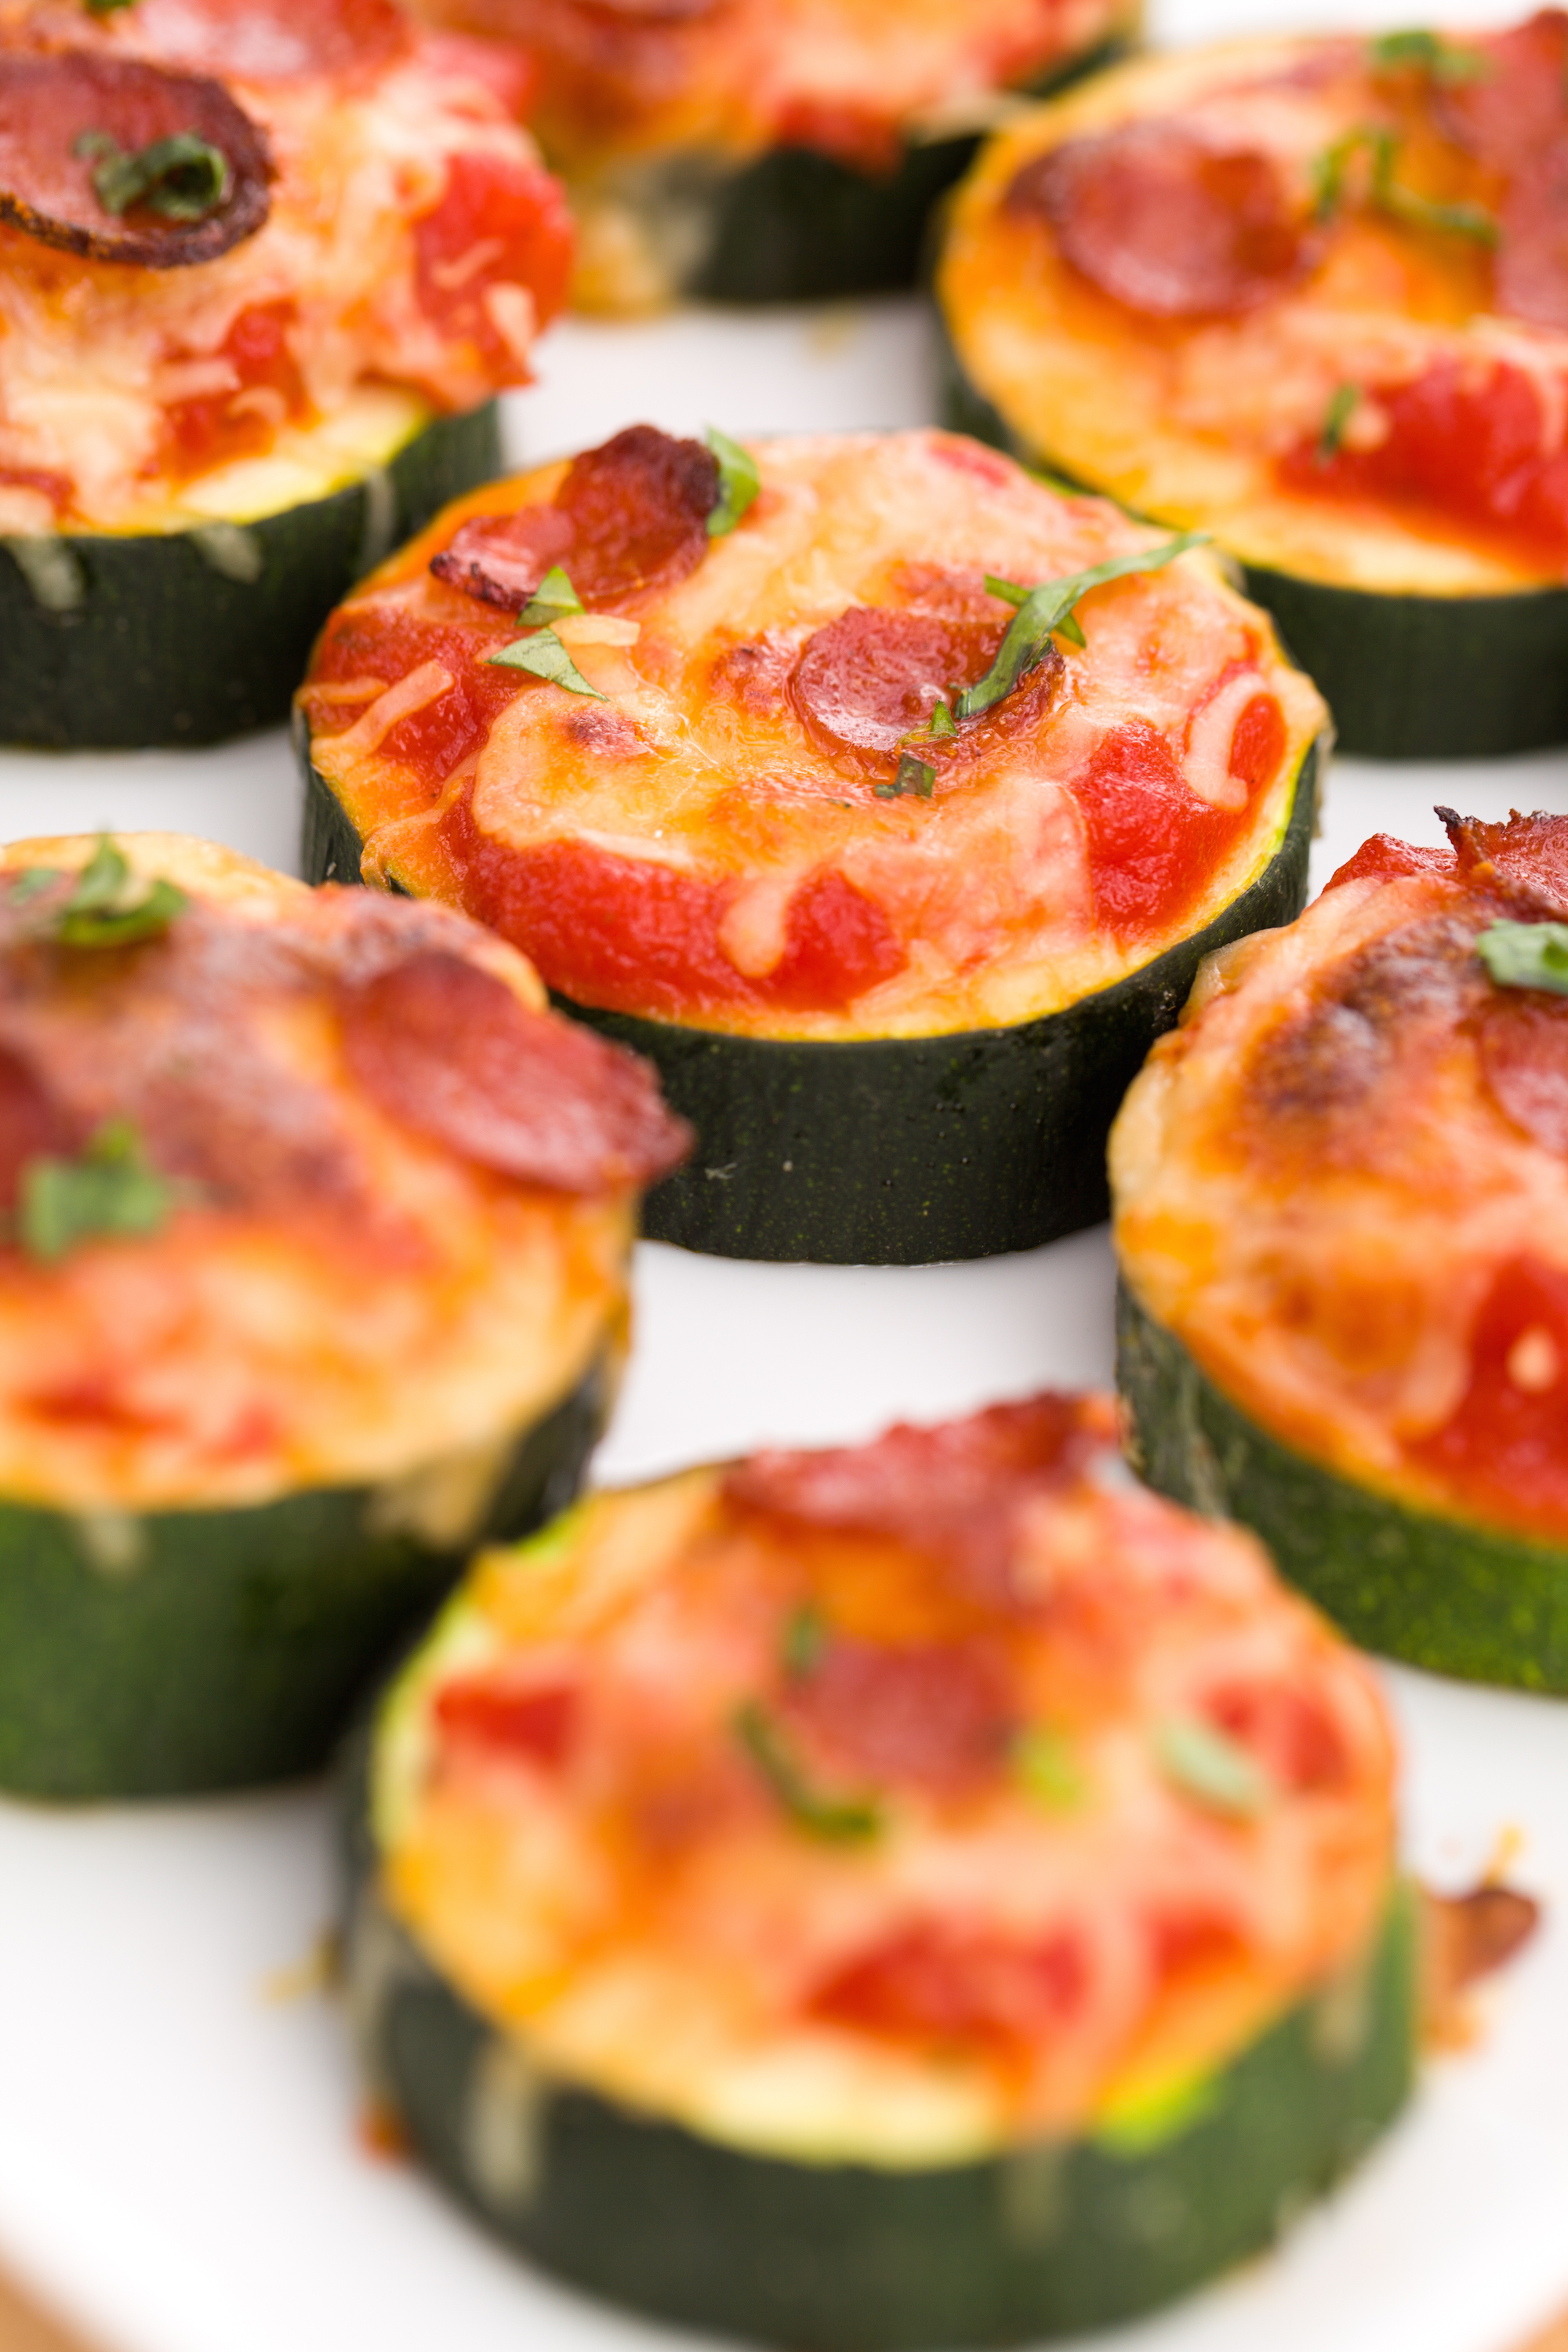 Healthy Cookout Recipes: 5 Best Healthy Zucchini Recipes